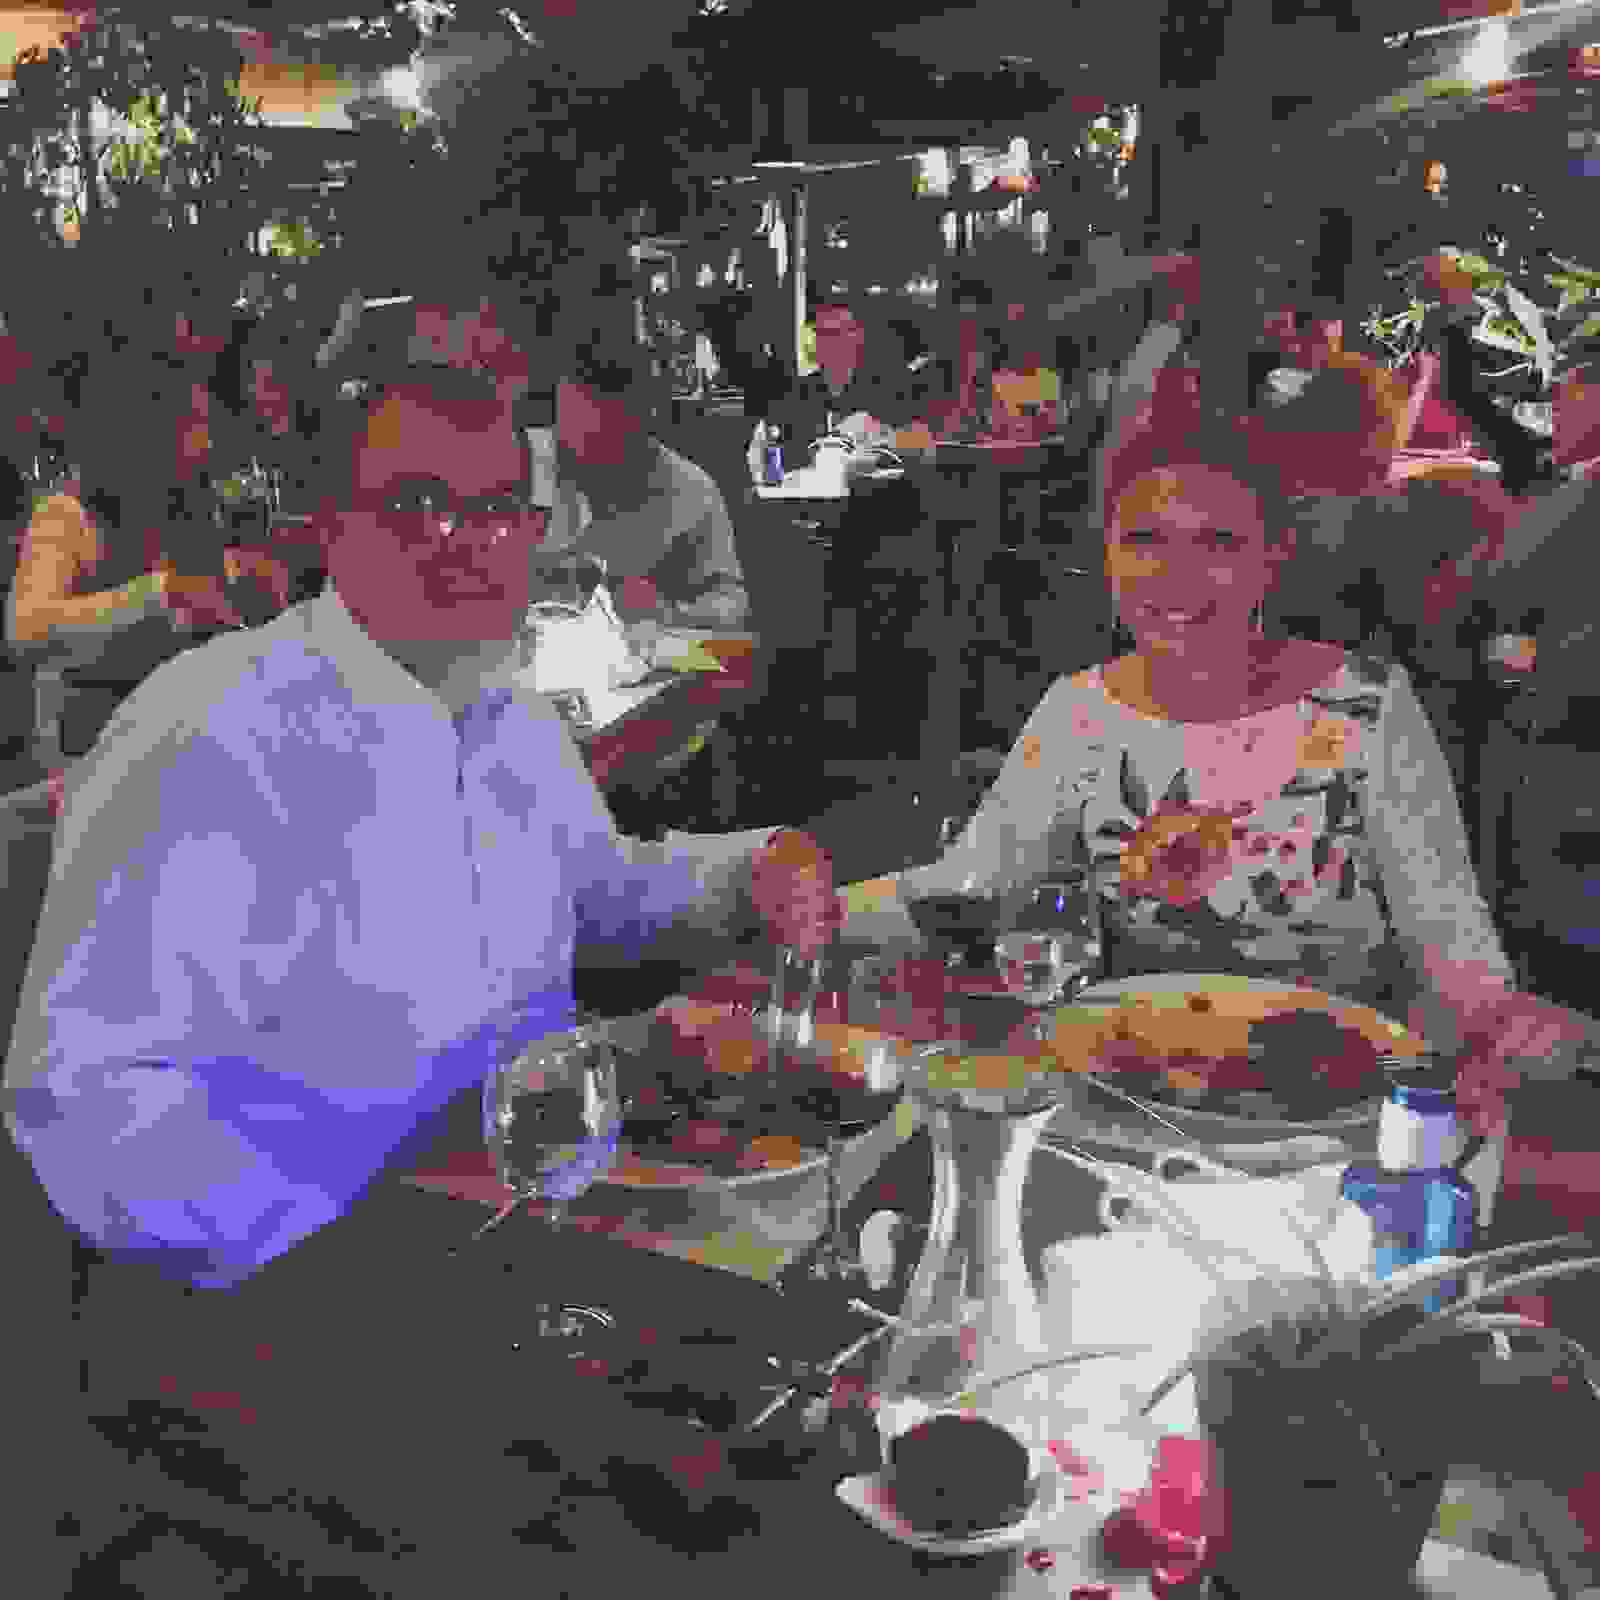 Dining in tenerife at our favourite restaurant